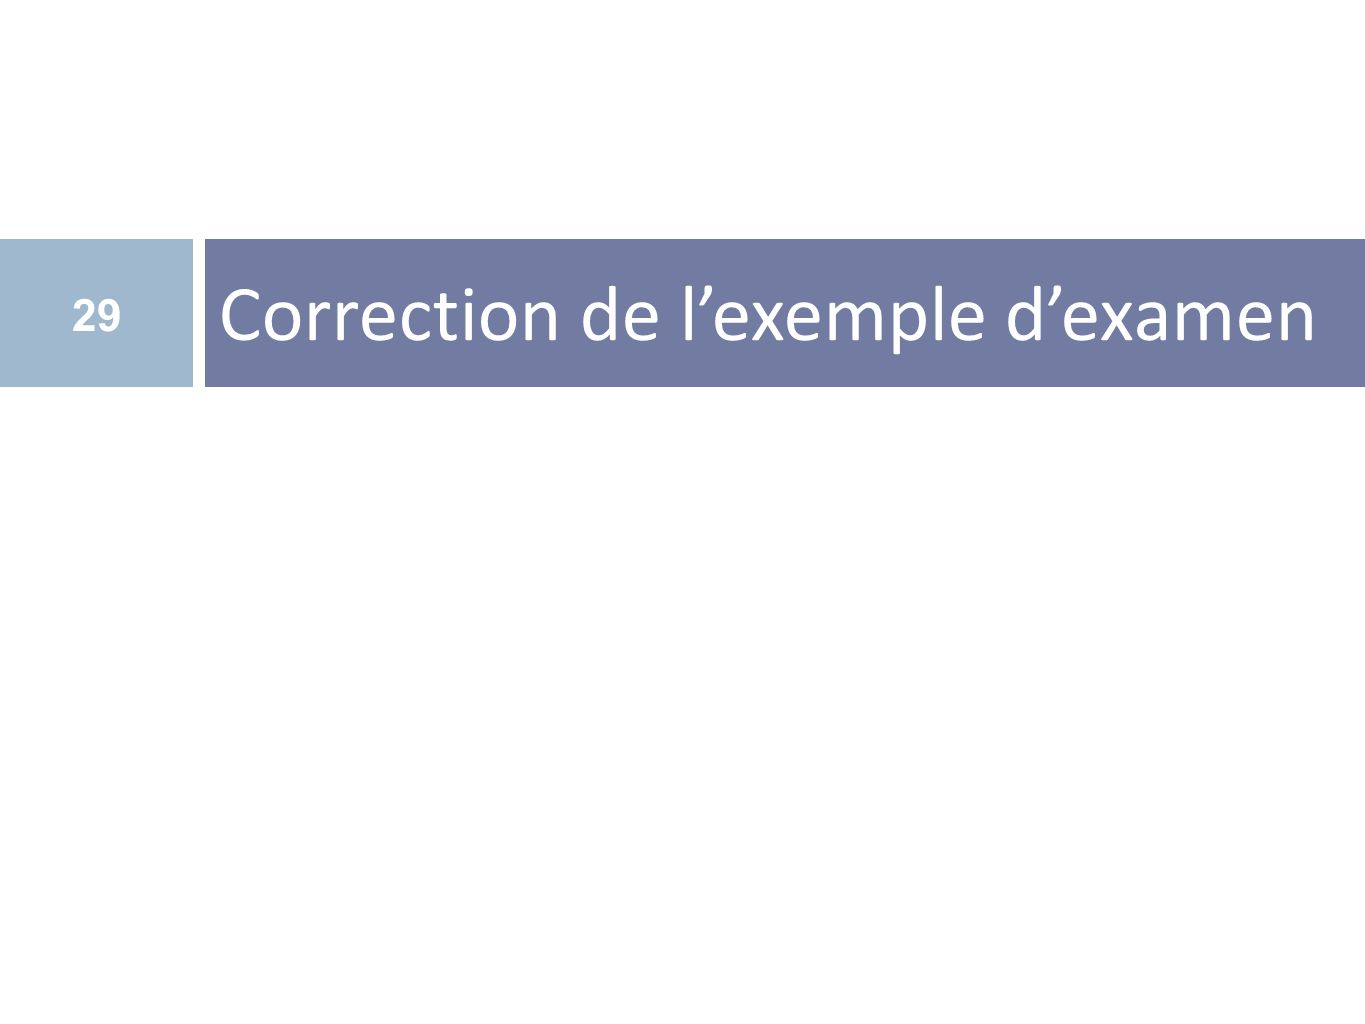 Correction de l'exemple d'examen